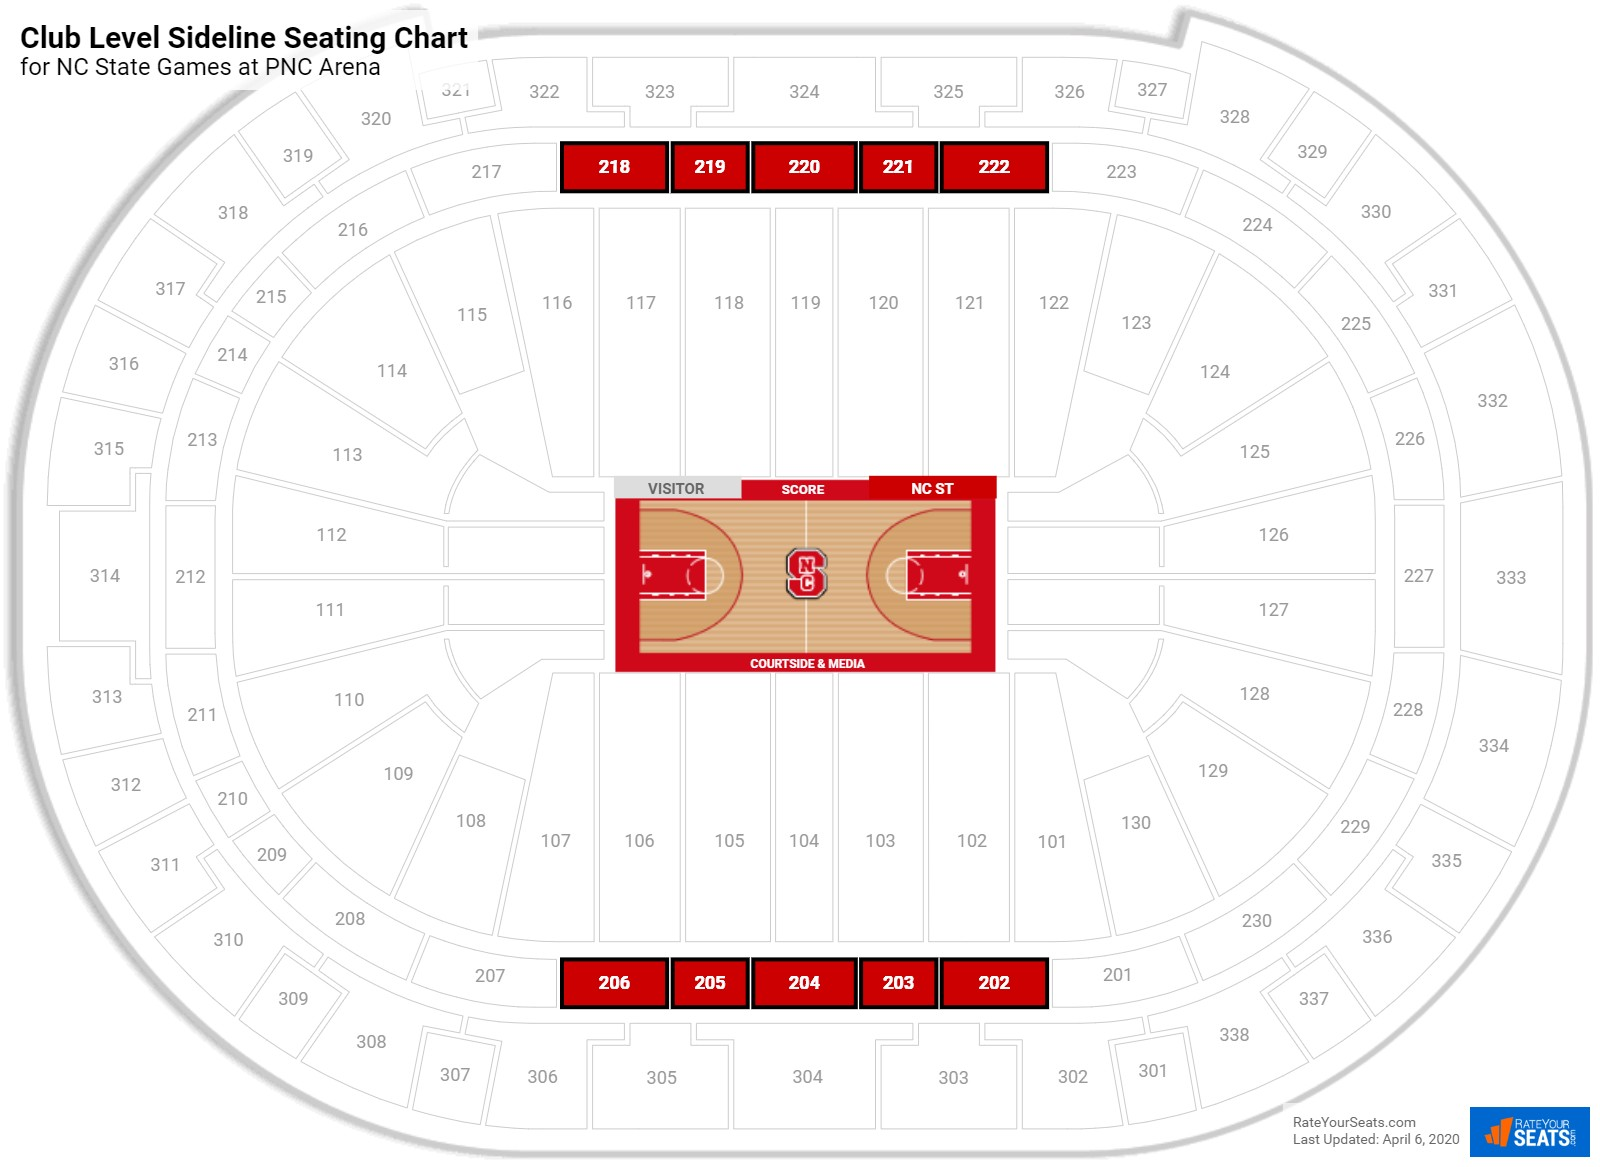 club level side pnc arena basketball seating. Black Bedroom Furniture Sets. Home Design Ideas